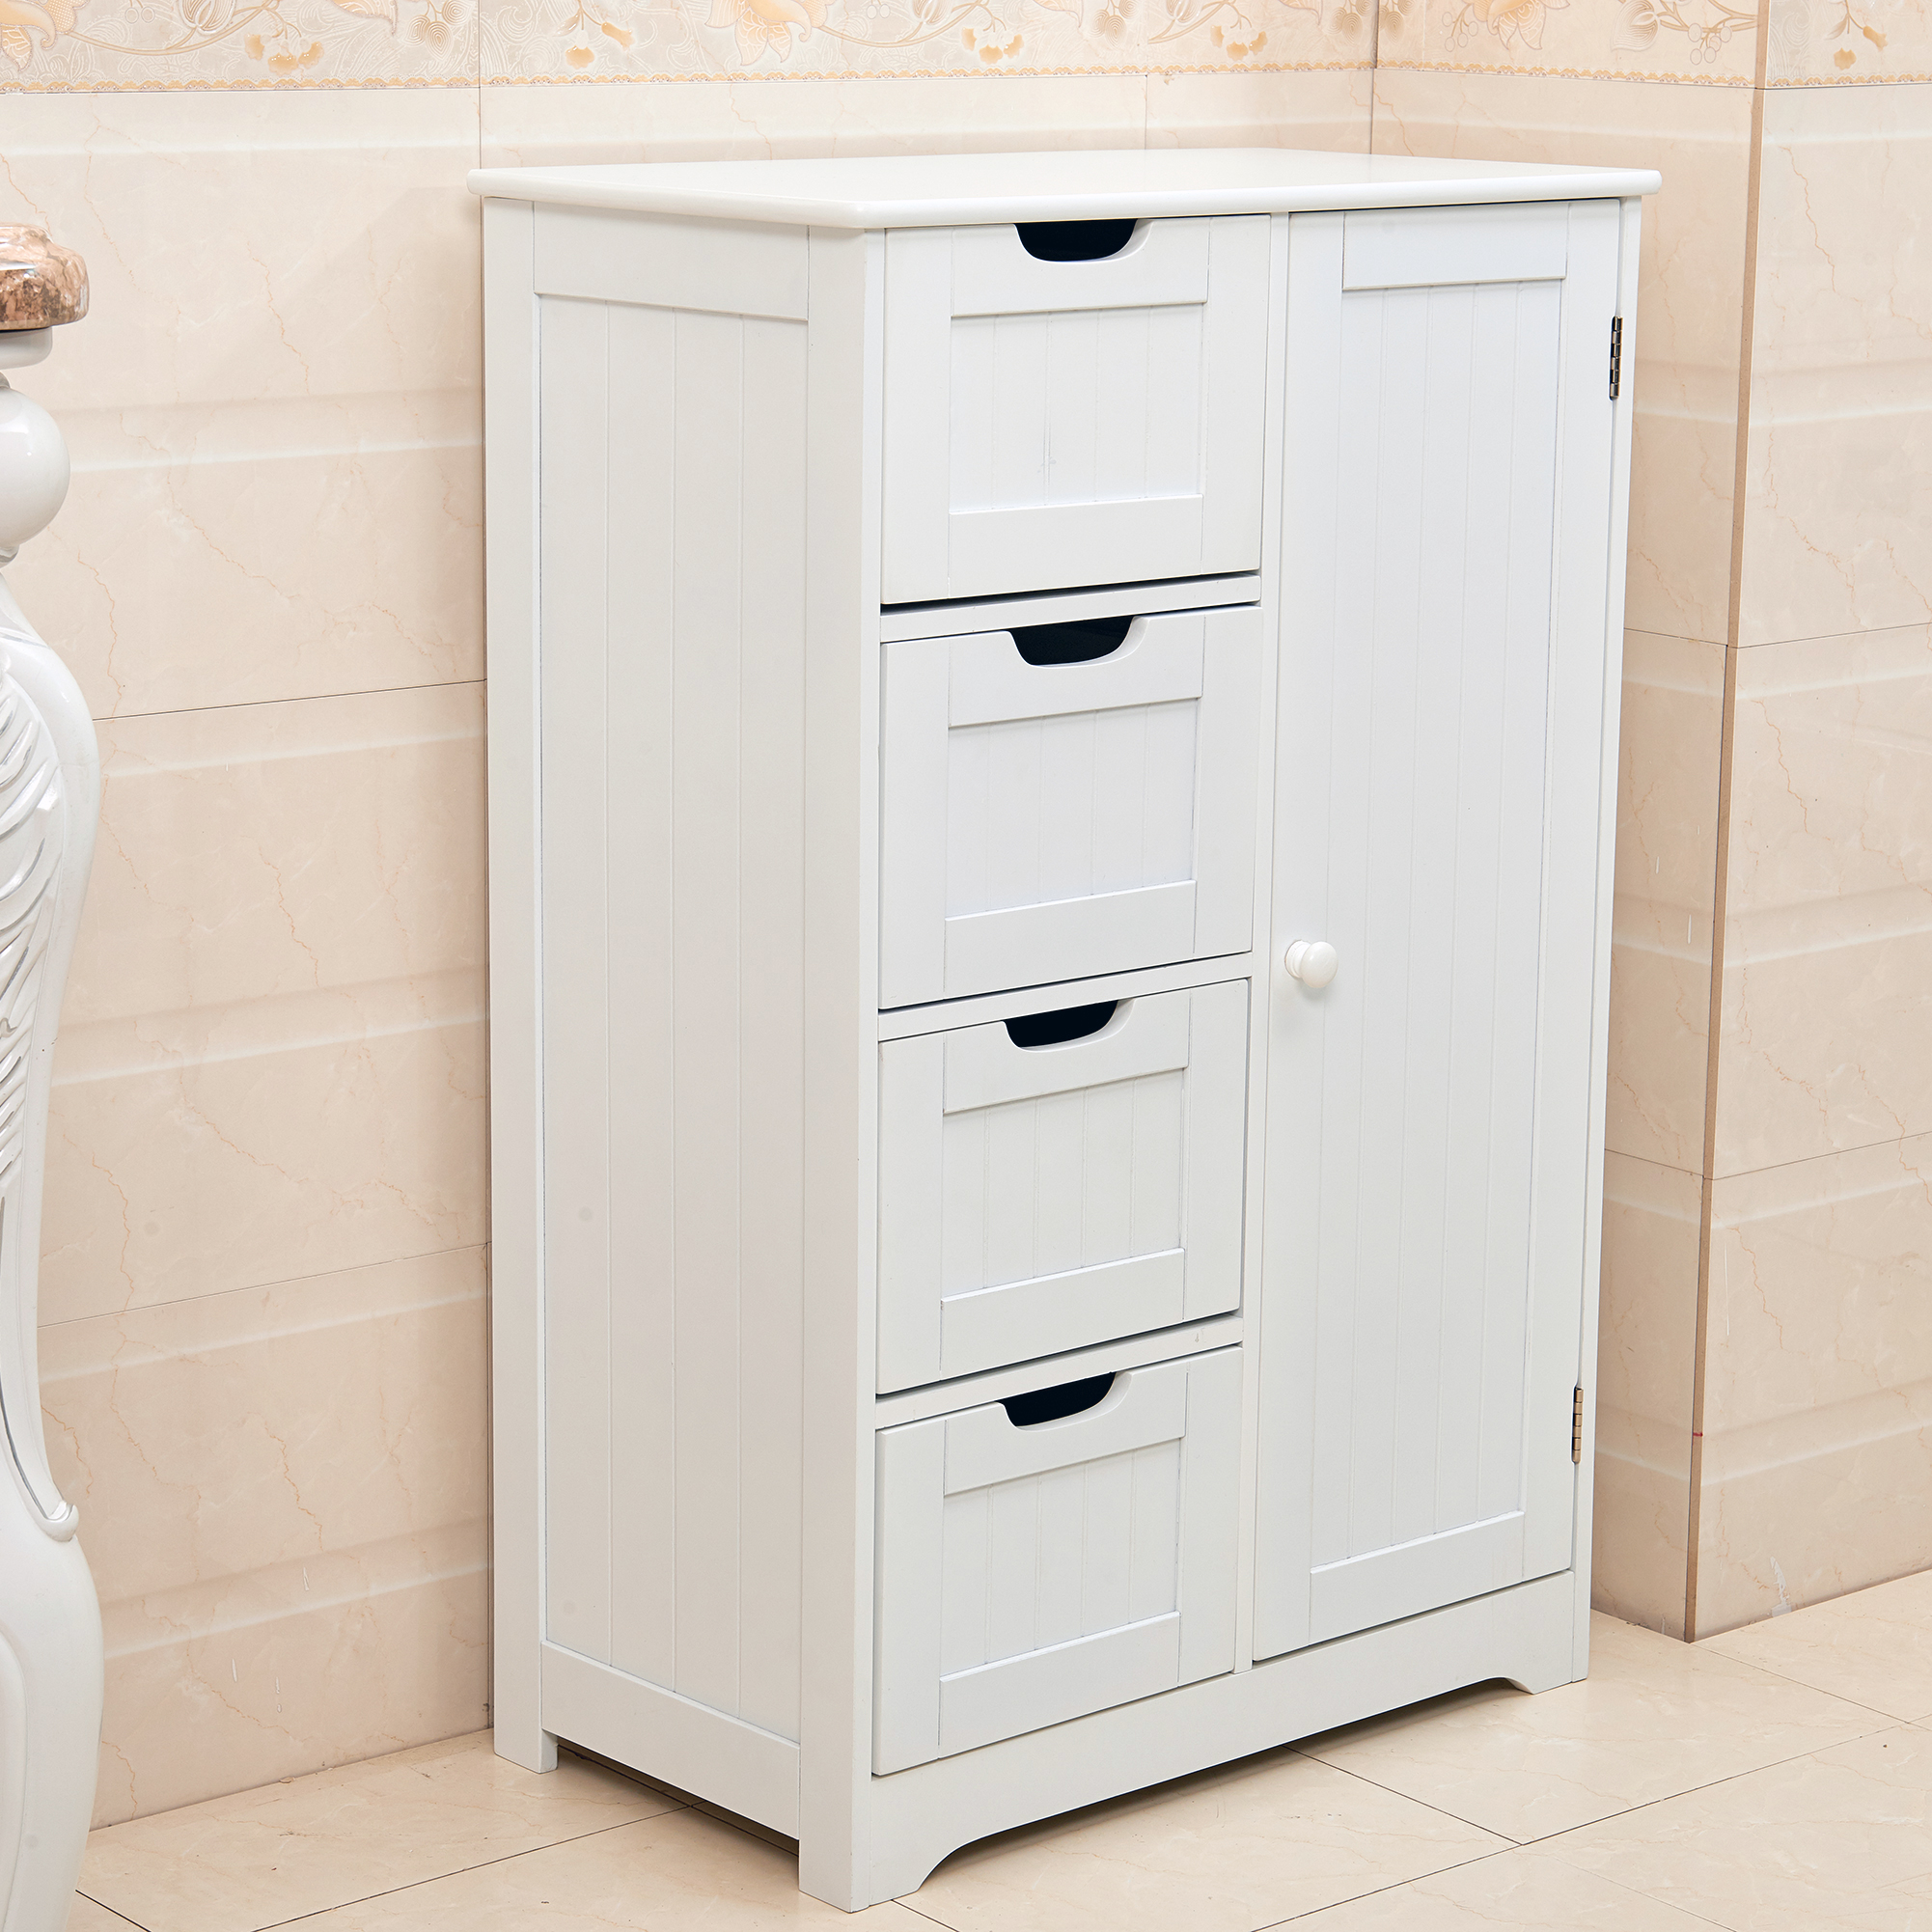 White wooden drawer bathroom storage cupboard cabinet